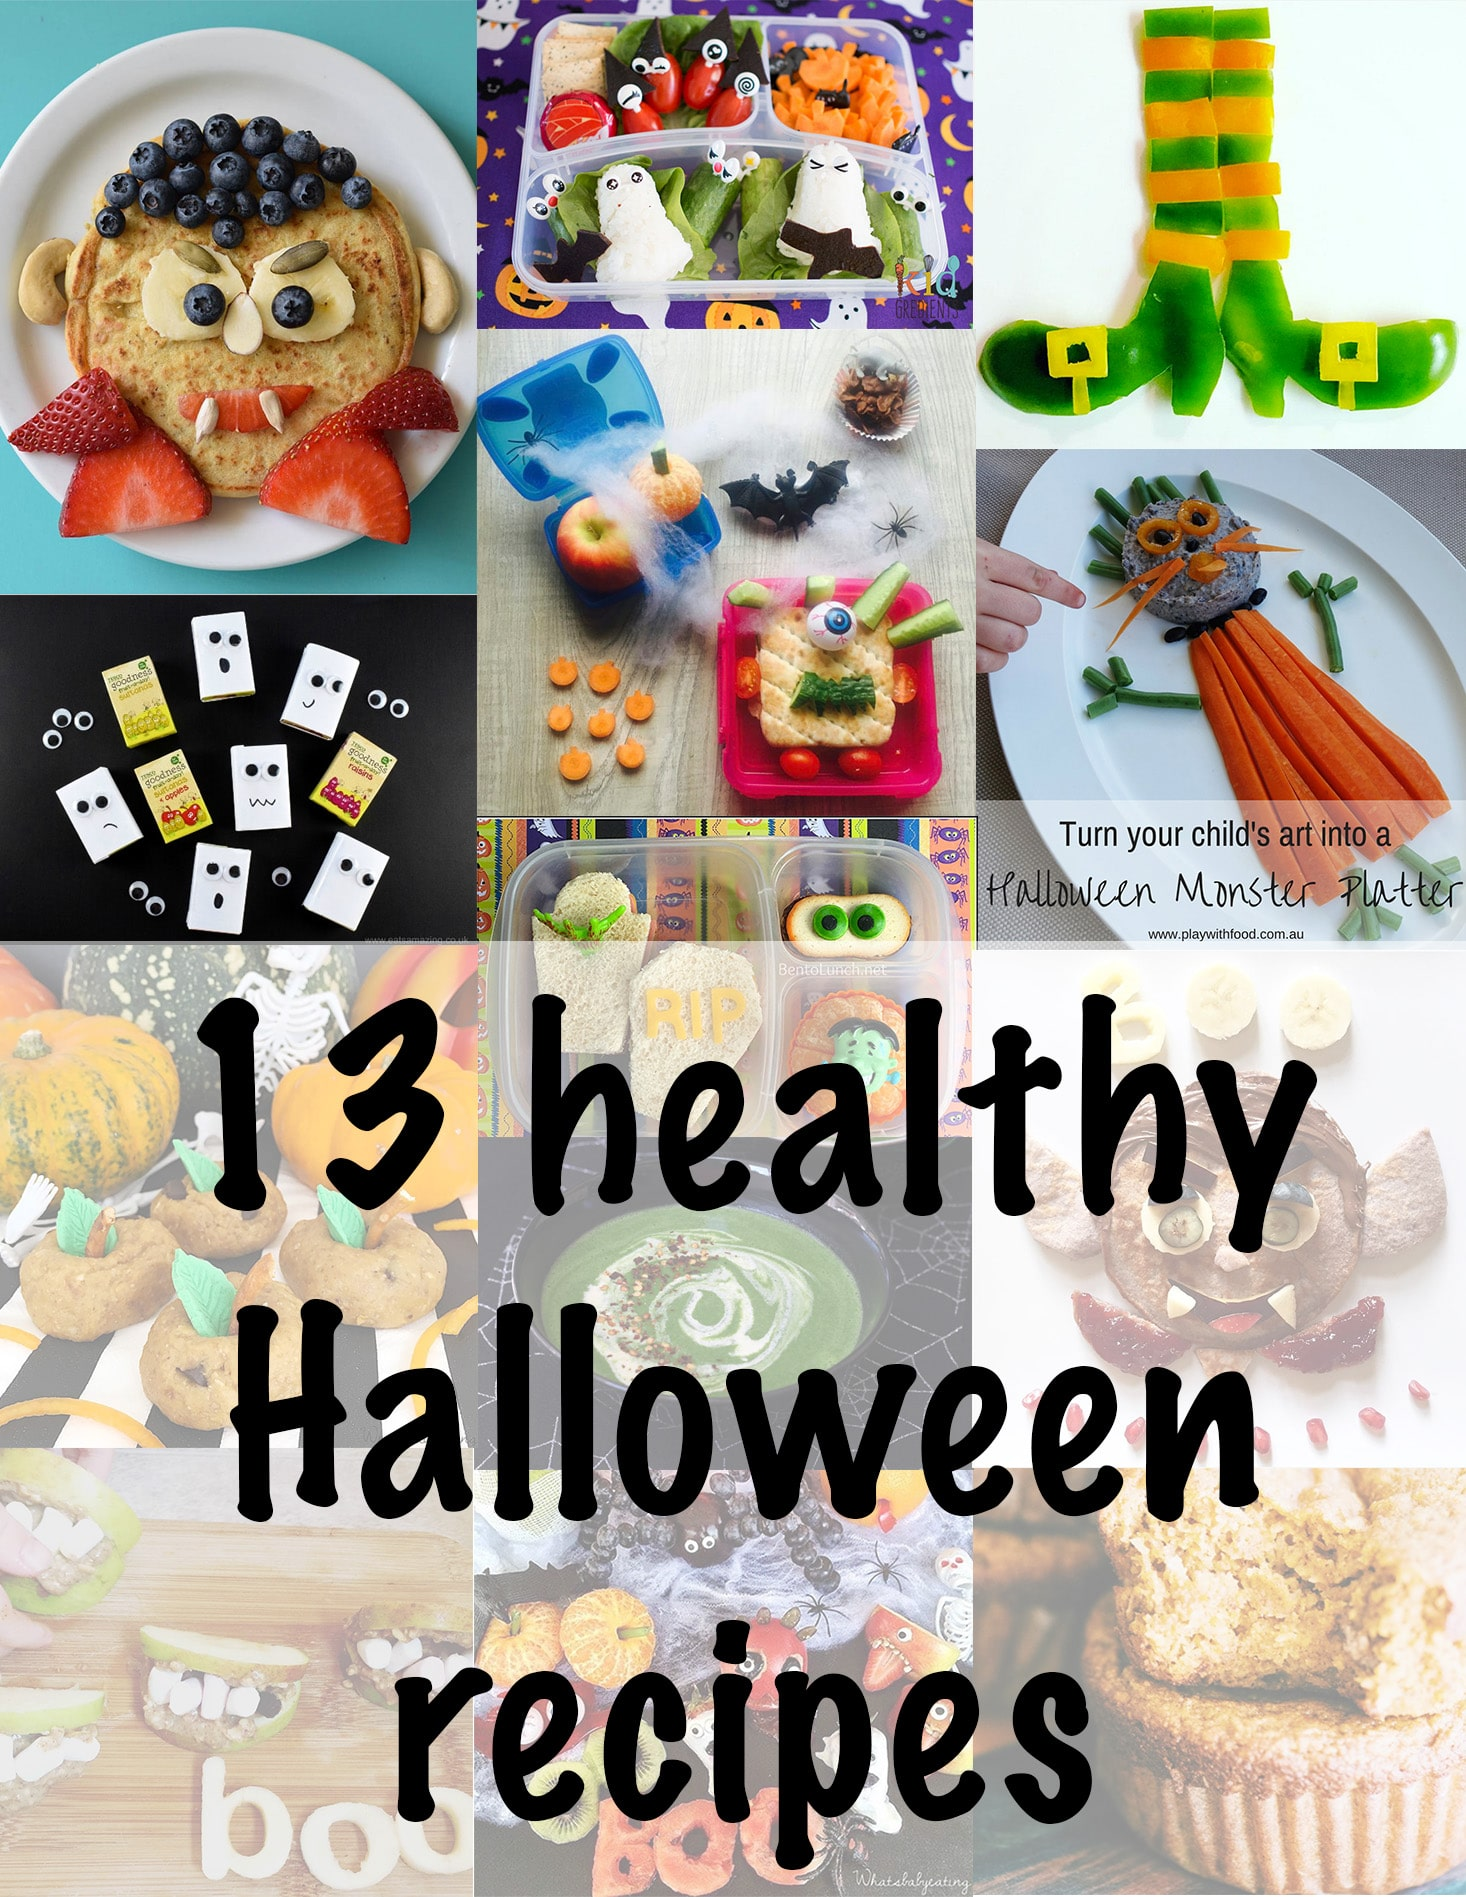 healthy halloween treats for kids to enjoy by Sneaky Veg